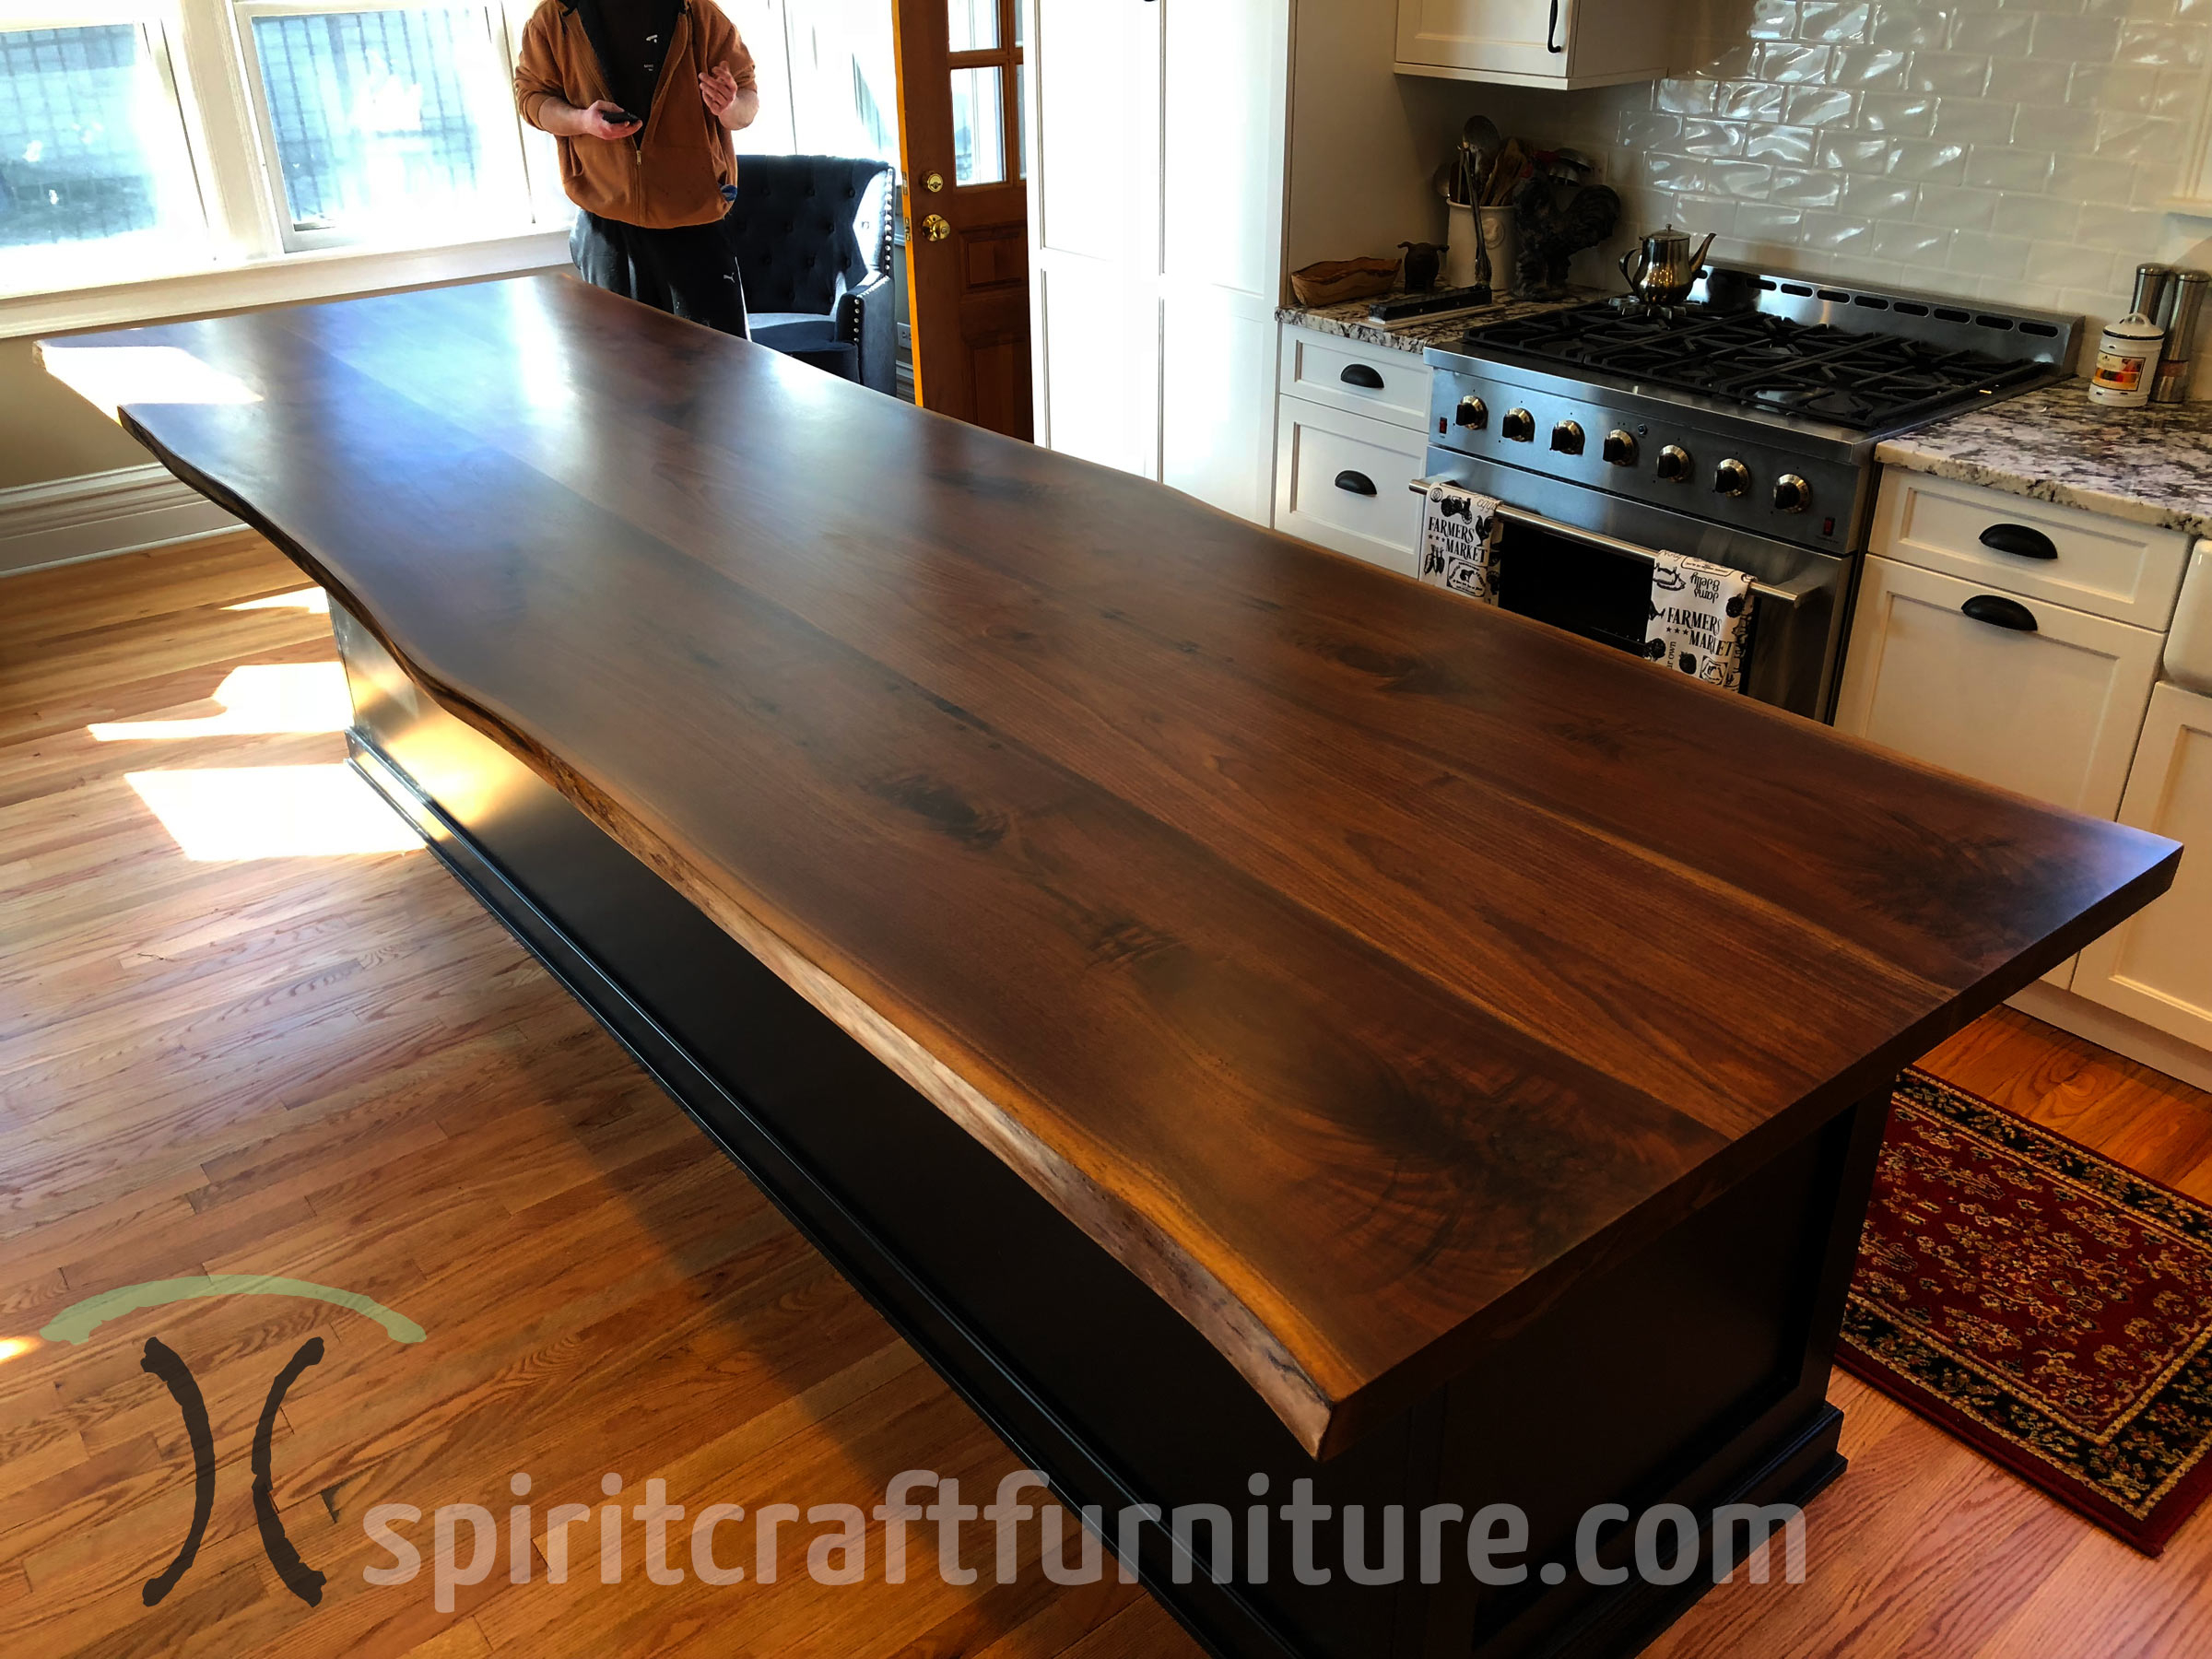 Most Current Falmer 3 Piece Solid Wood Dining Sets With Reviews And Client Testimonials – Spiritcraft Furniture (#9 of 20)